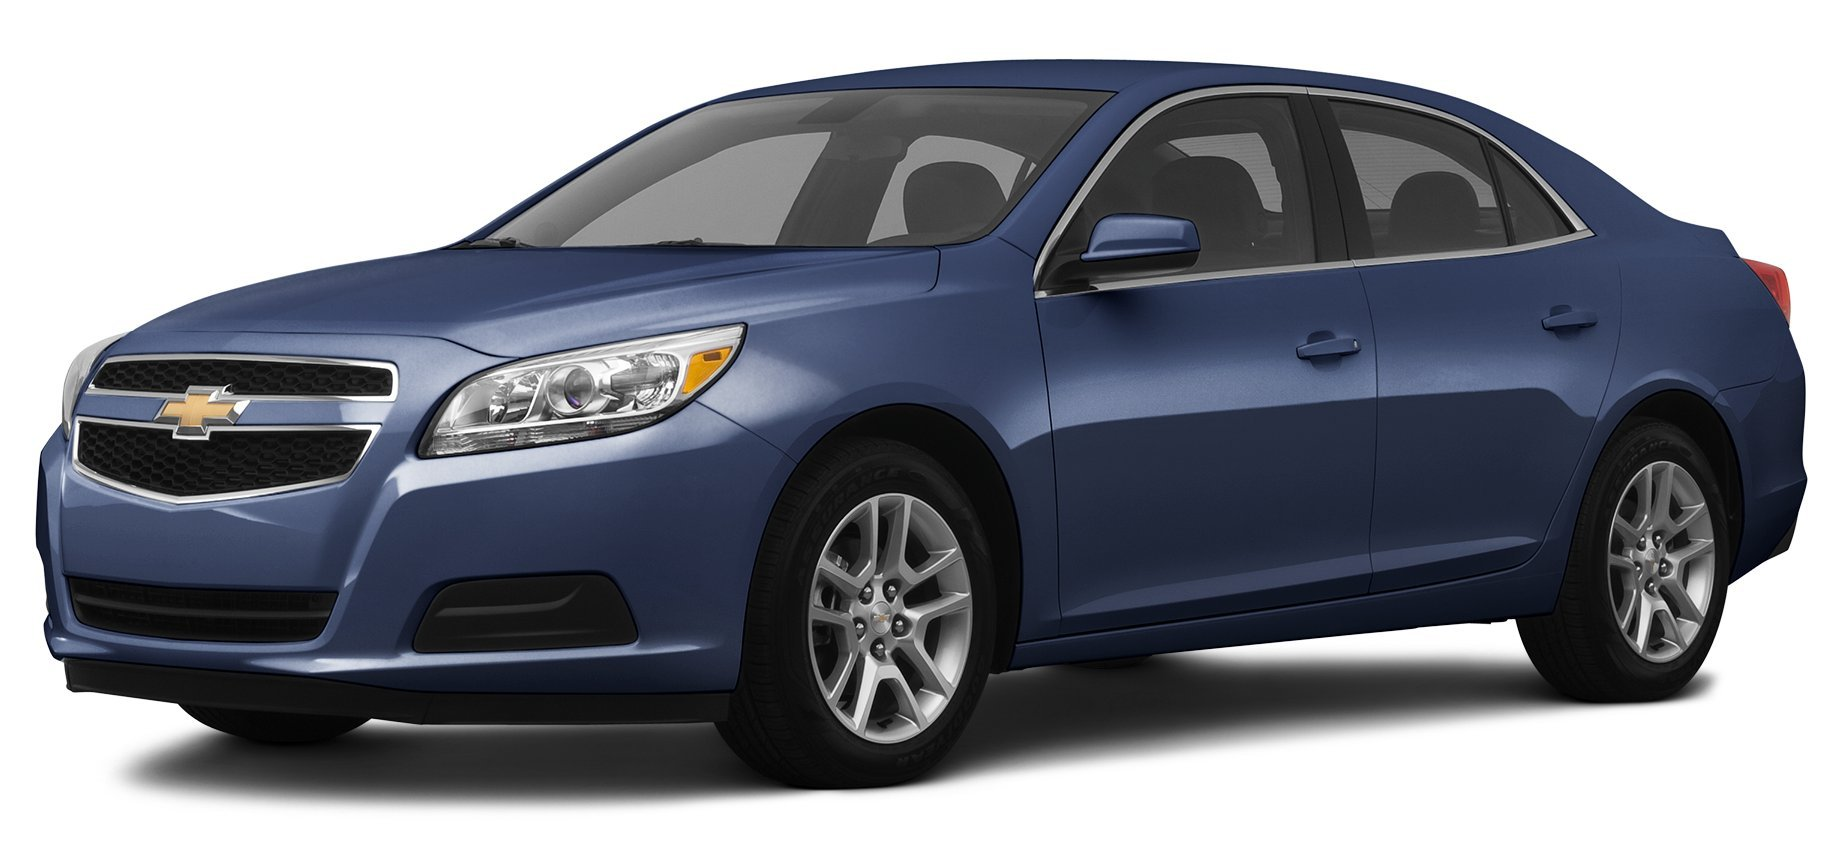 Amazon Com 2013 Chevrolet Malibu Reviews Images And Specs Vehicles